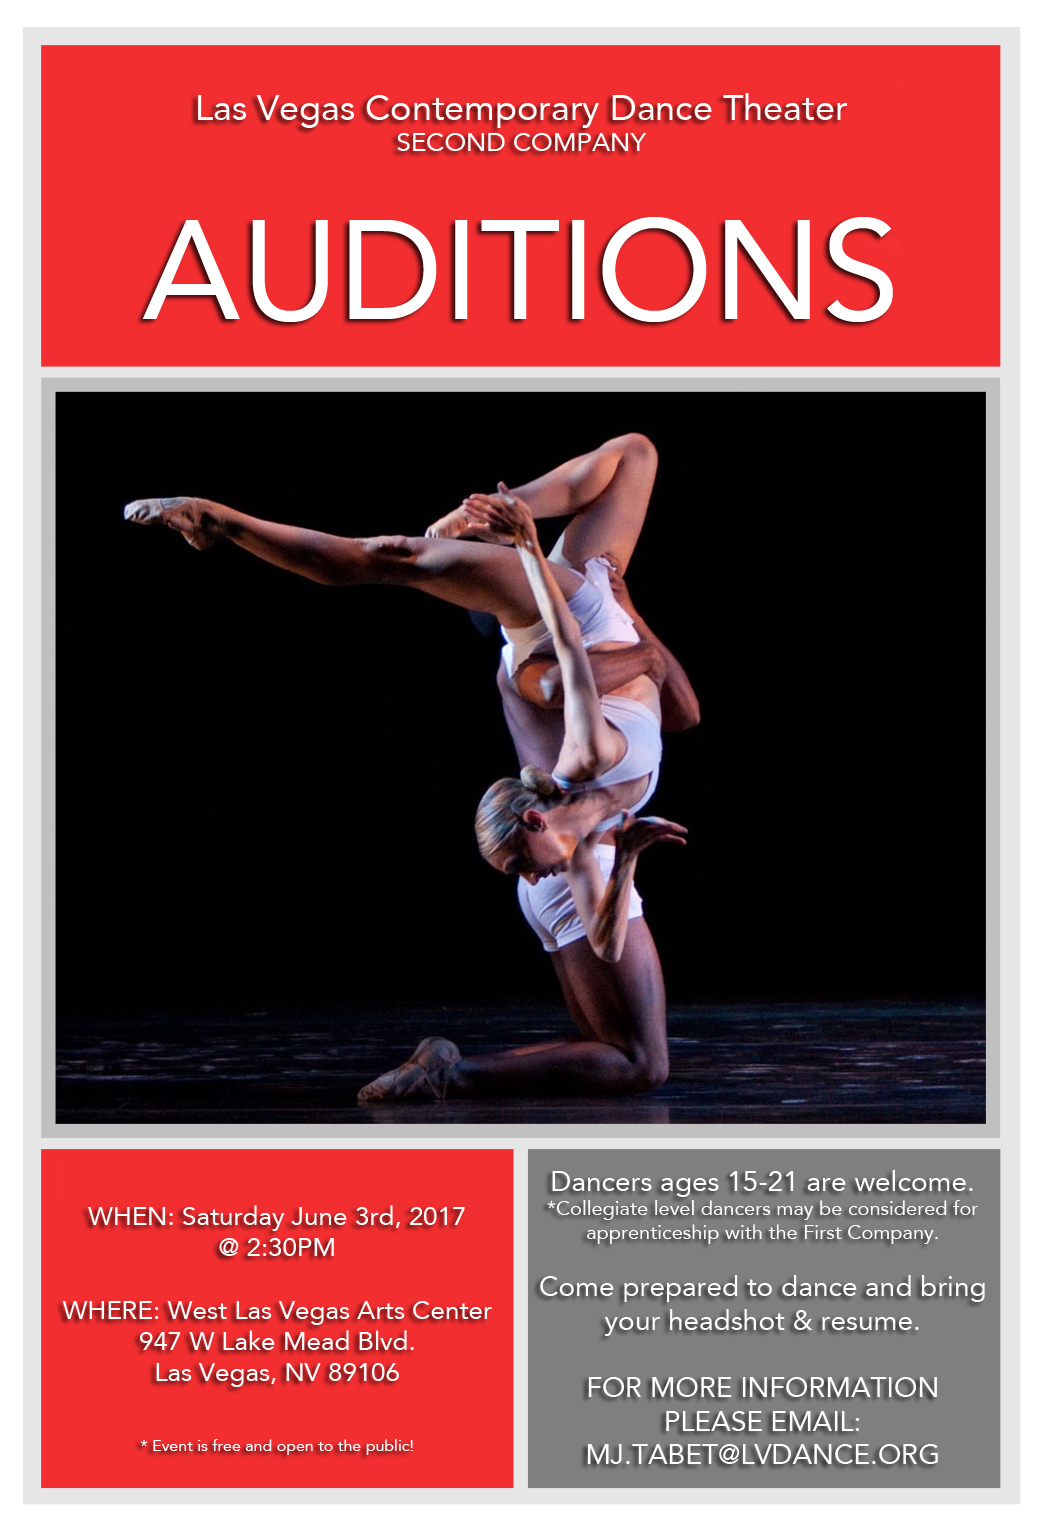 LVCDT2 Audition Flyer